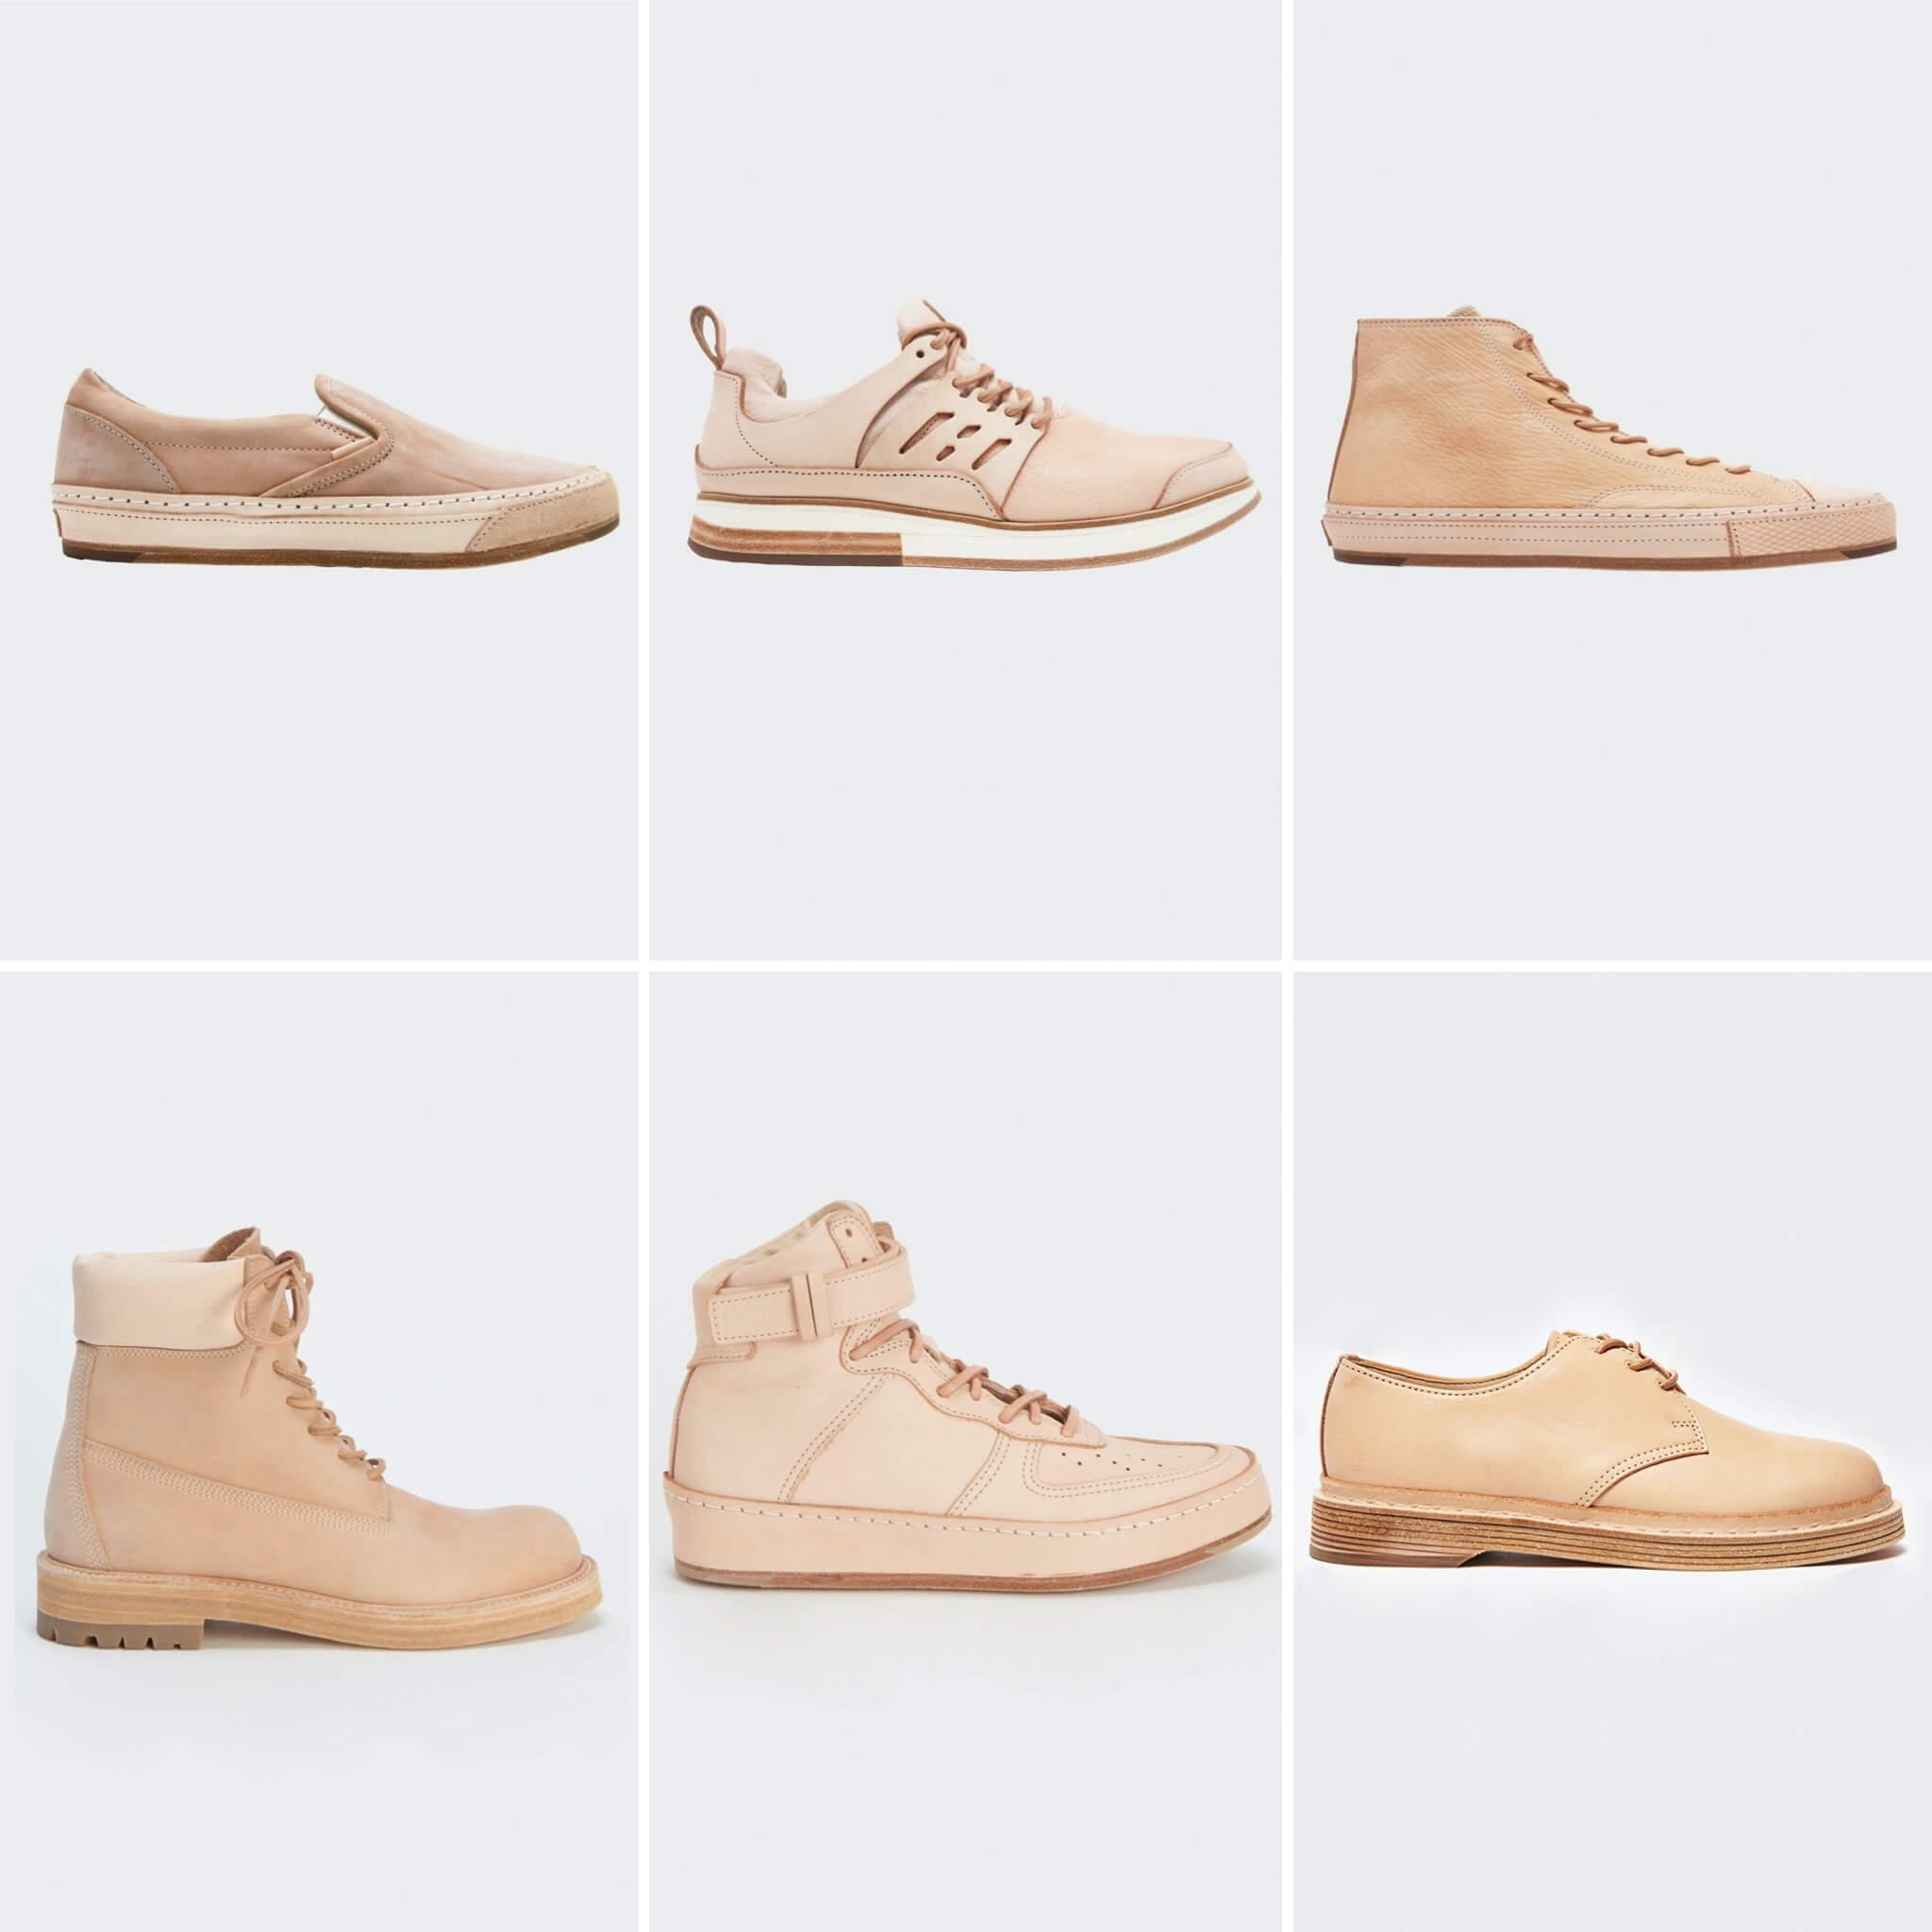 hender scheme's manual industrial products with vans classic slip-ons, nike prestos, converse hi-tops, timberlands, air force 1s and dr. martens